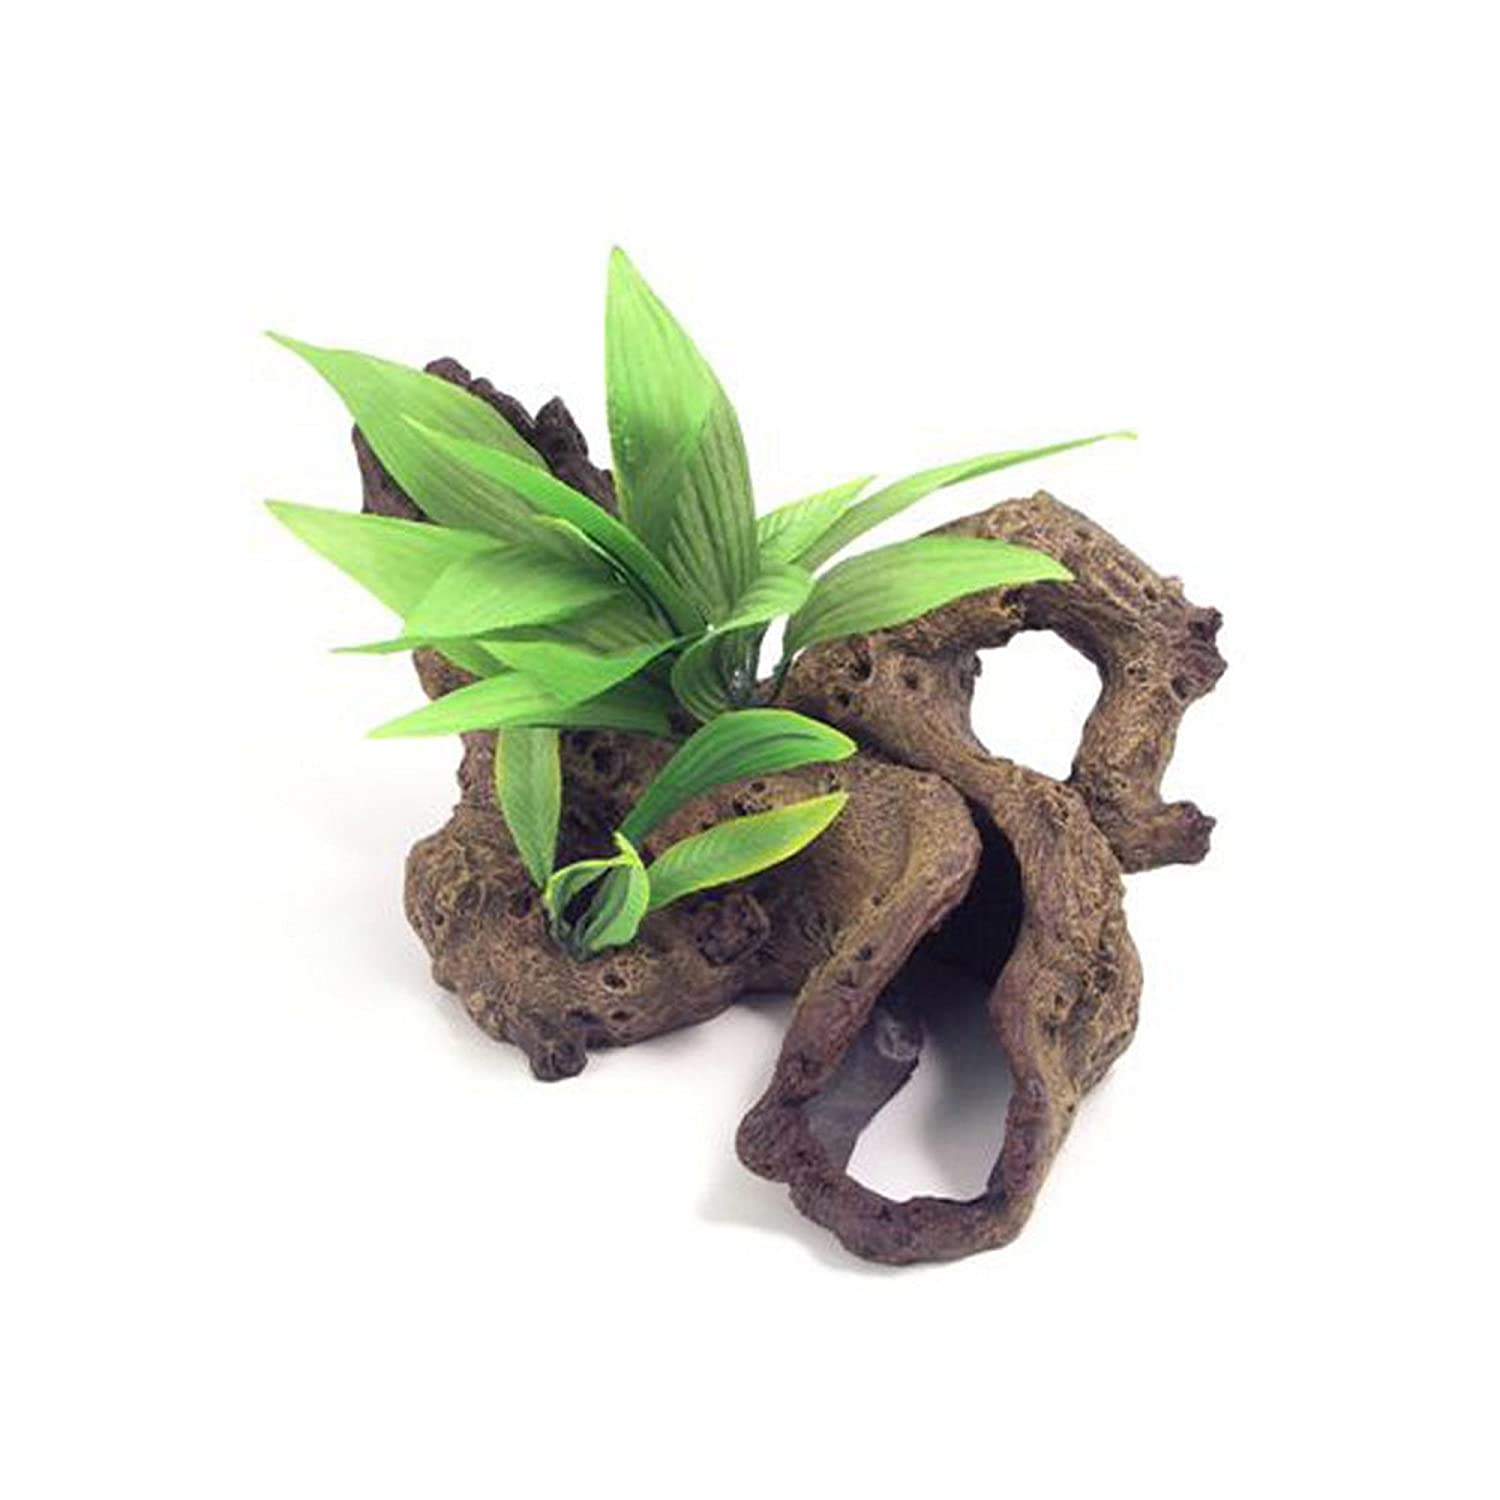 Brown Green Large Brown Green Large pinkwood bluee Ribbon Decor Mopani Wood With Plants Ornament (Large) (Brown Green)